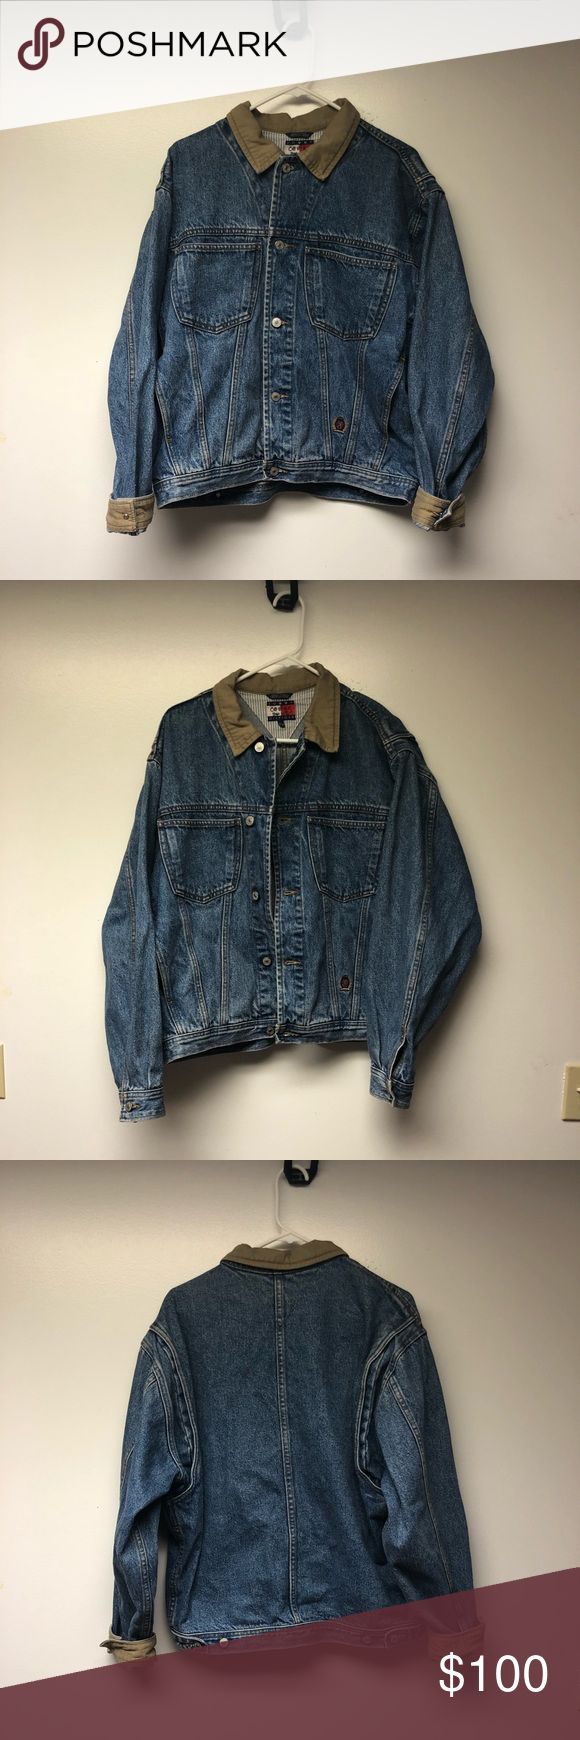 Vintage Tommy Hilfiger Denim Jacket Super rare tommy denim! Features a khaki collar, when the sleeves are rolled they're khaki as well, and features the Tommy crest logo towards the bottom. This Jacket is super hard to find in a size medium I'm open to reasonable offers and can put measurements up later. The only sign on condition is on the sleeves but adds to the vintage look. Tommy Hilfiger Jackets & Coats Bomber & Varsity